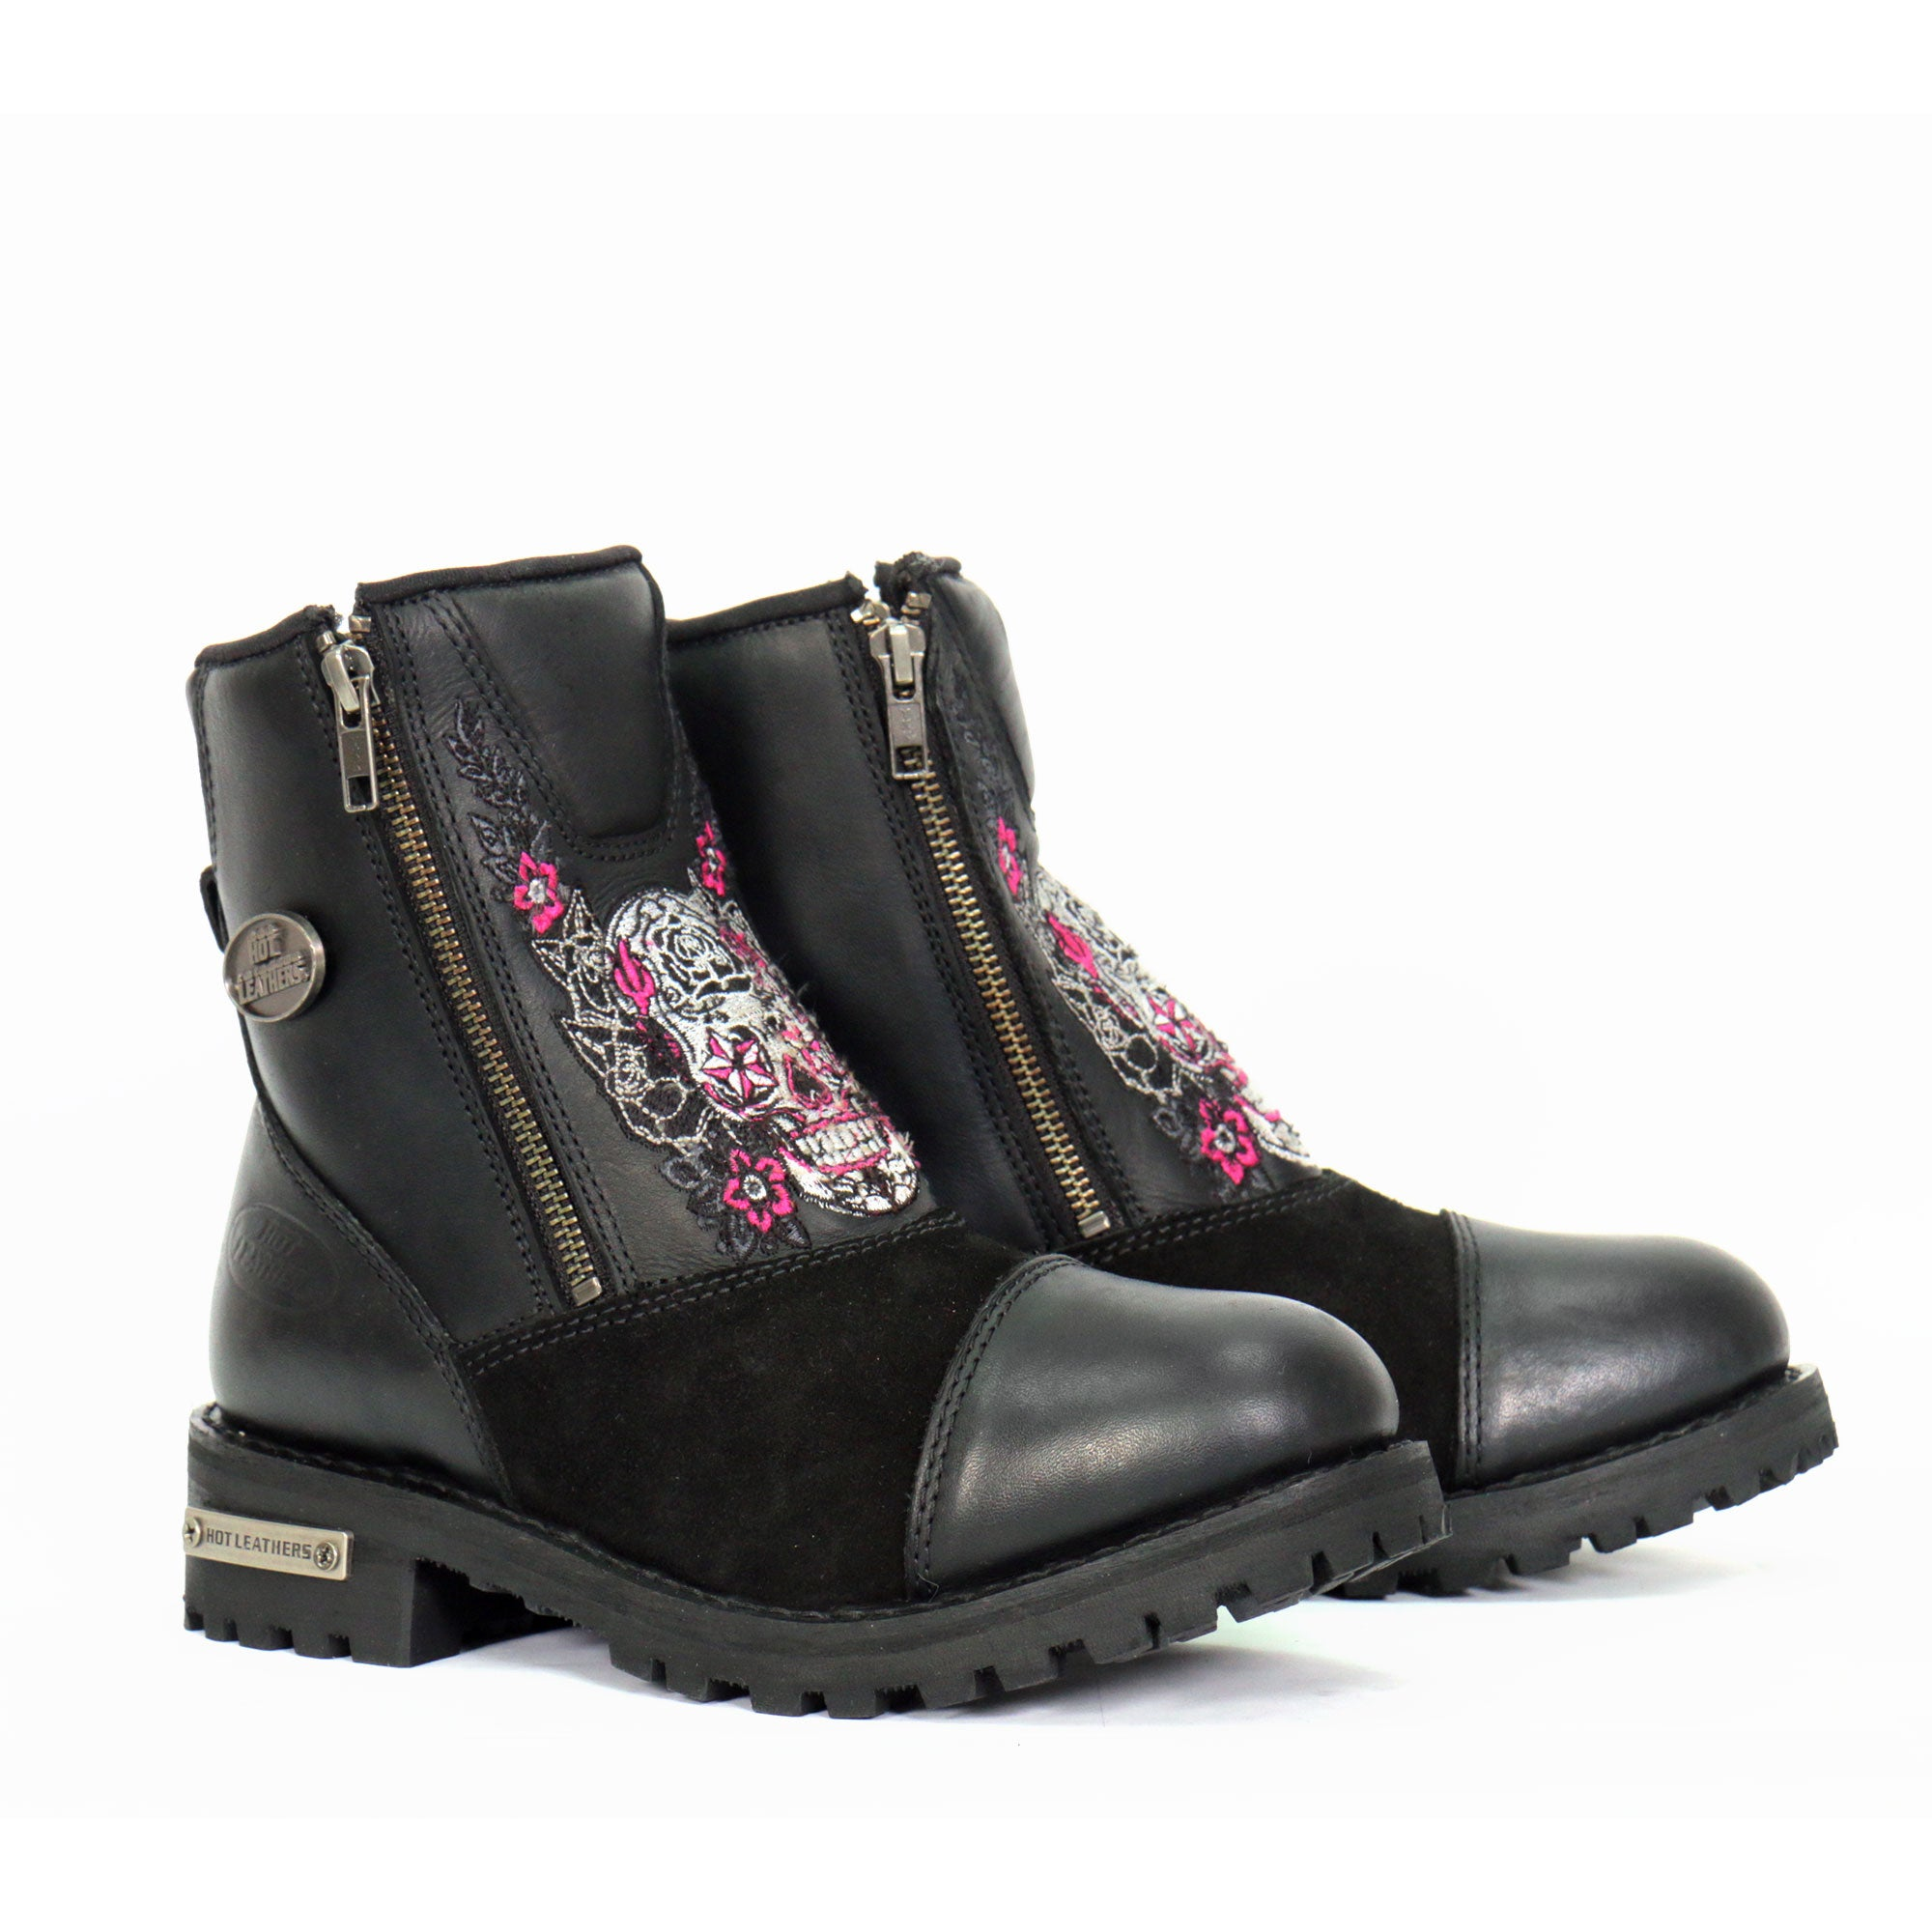 Hot Leathers Double Zip Sugar Skull Ladies Cap Toe Leather Boot